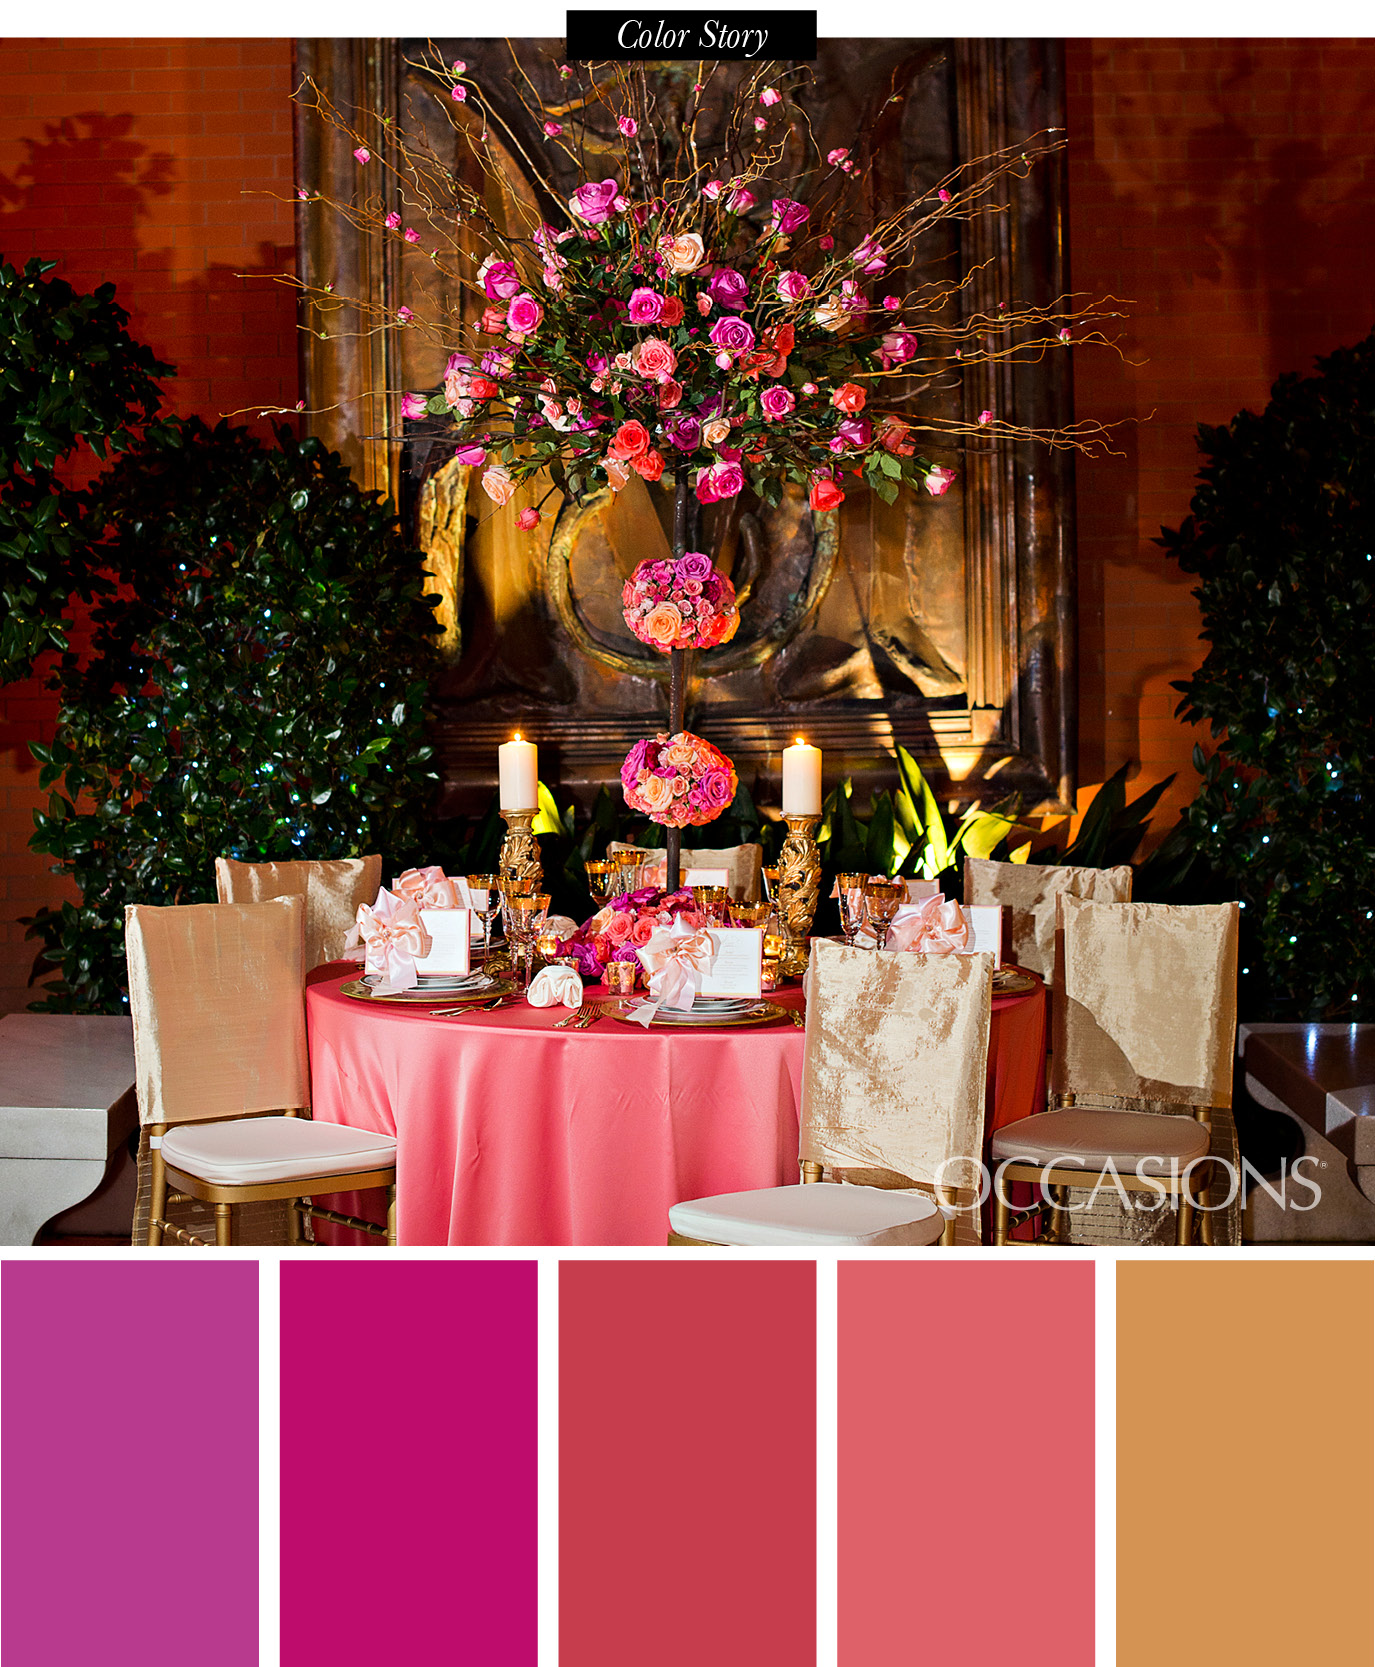 Southern Wedding Decoration Ideas: Savannah Sunset Themed Reception Decor